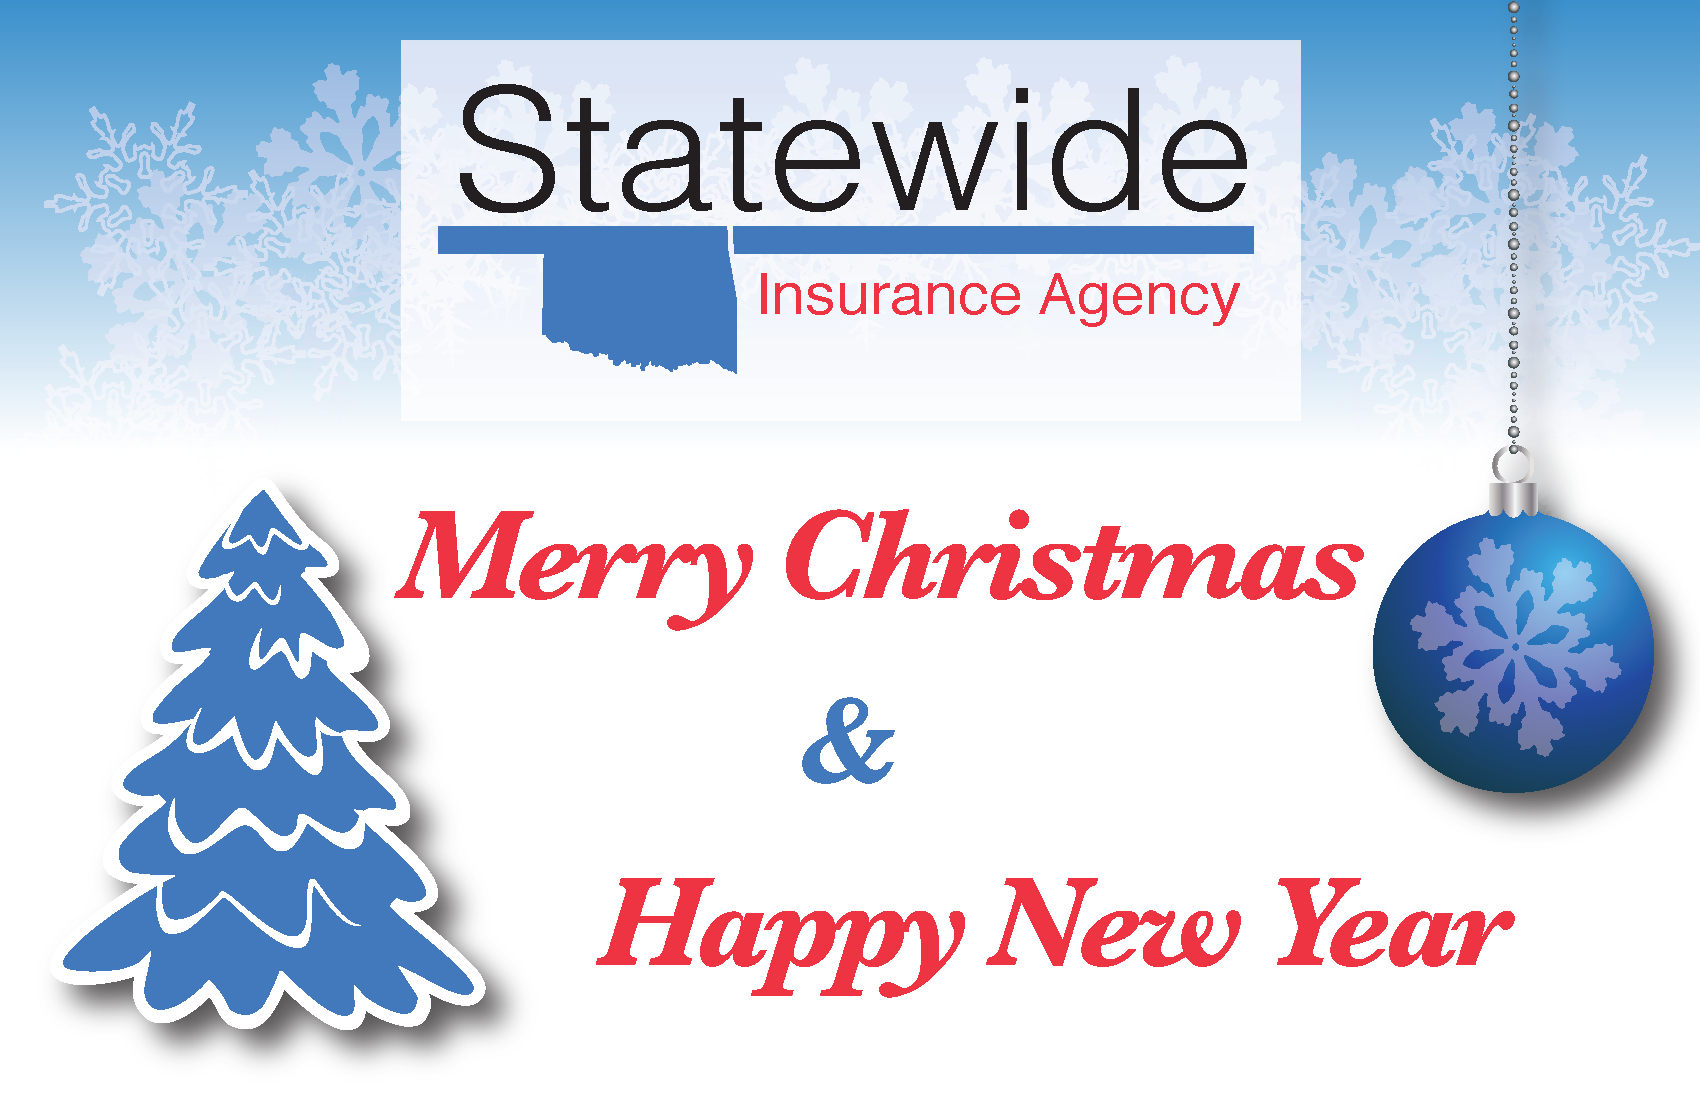 Merry Christmas From Statewide Insurance Agency